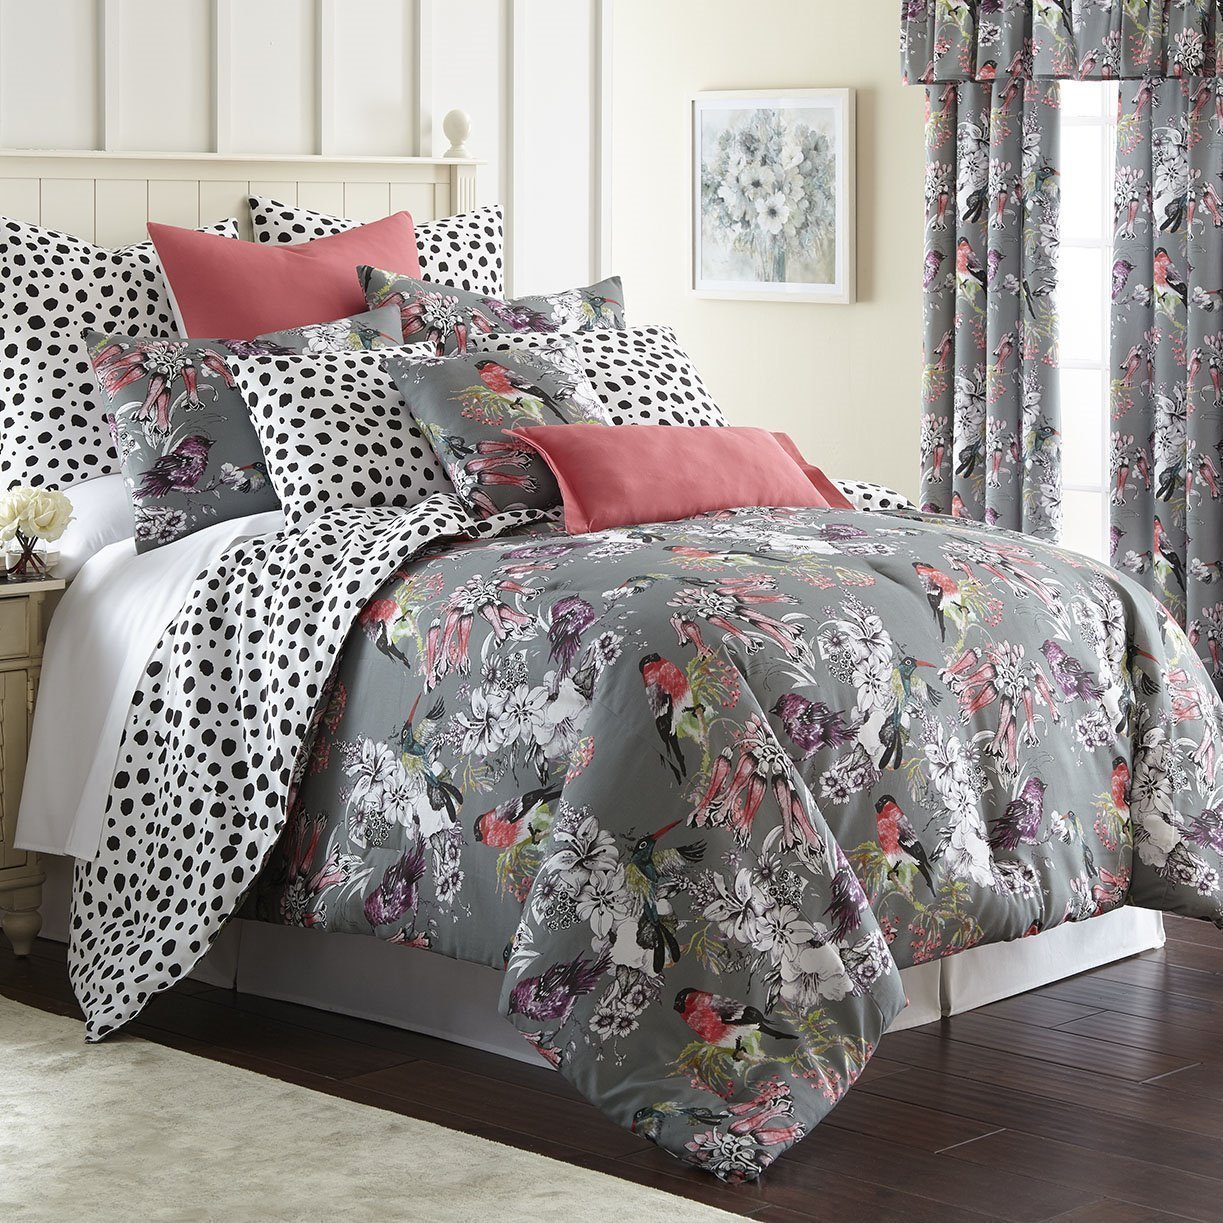 Birds In Bliss Comforter Set Reversible King